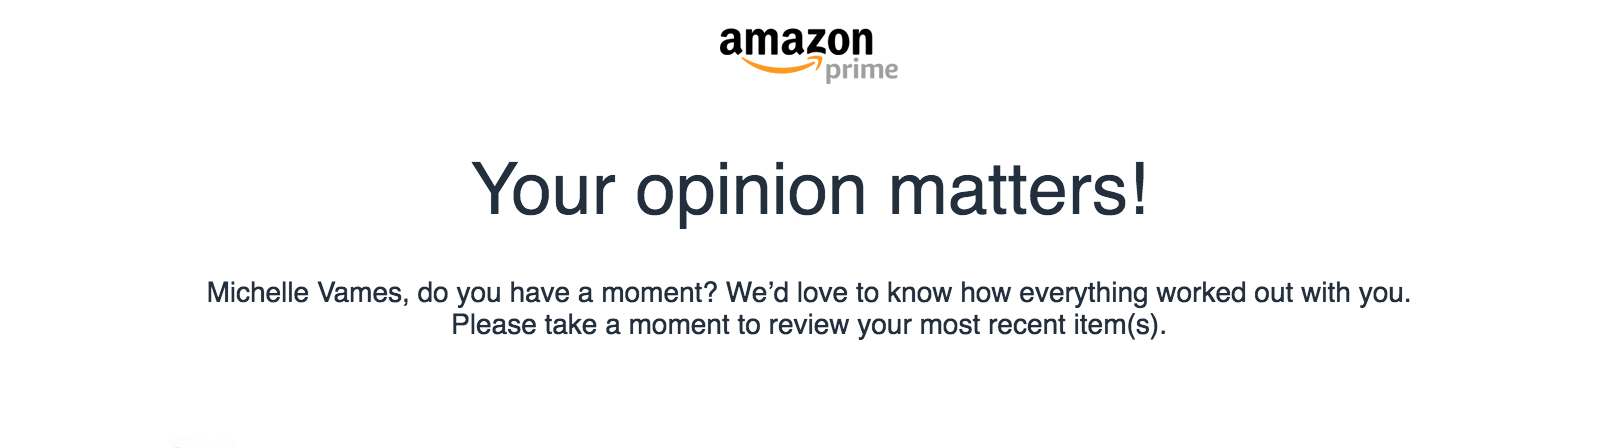 A Review of My Recent Amazon Purchase